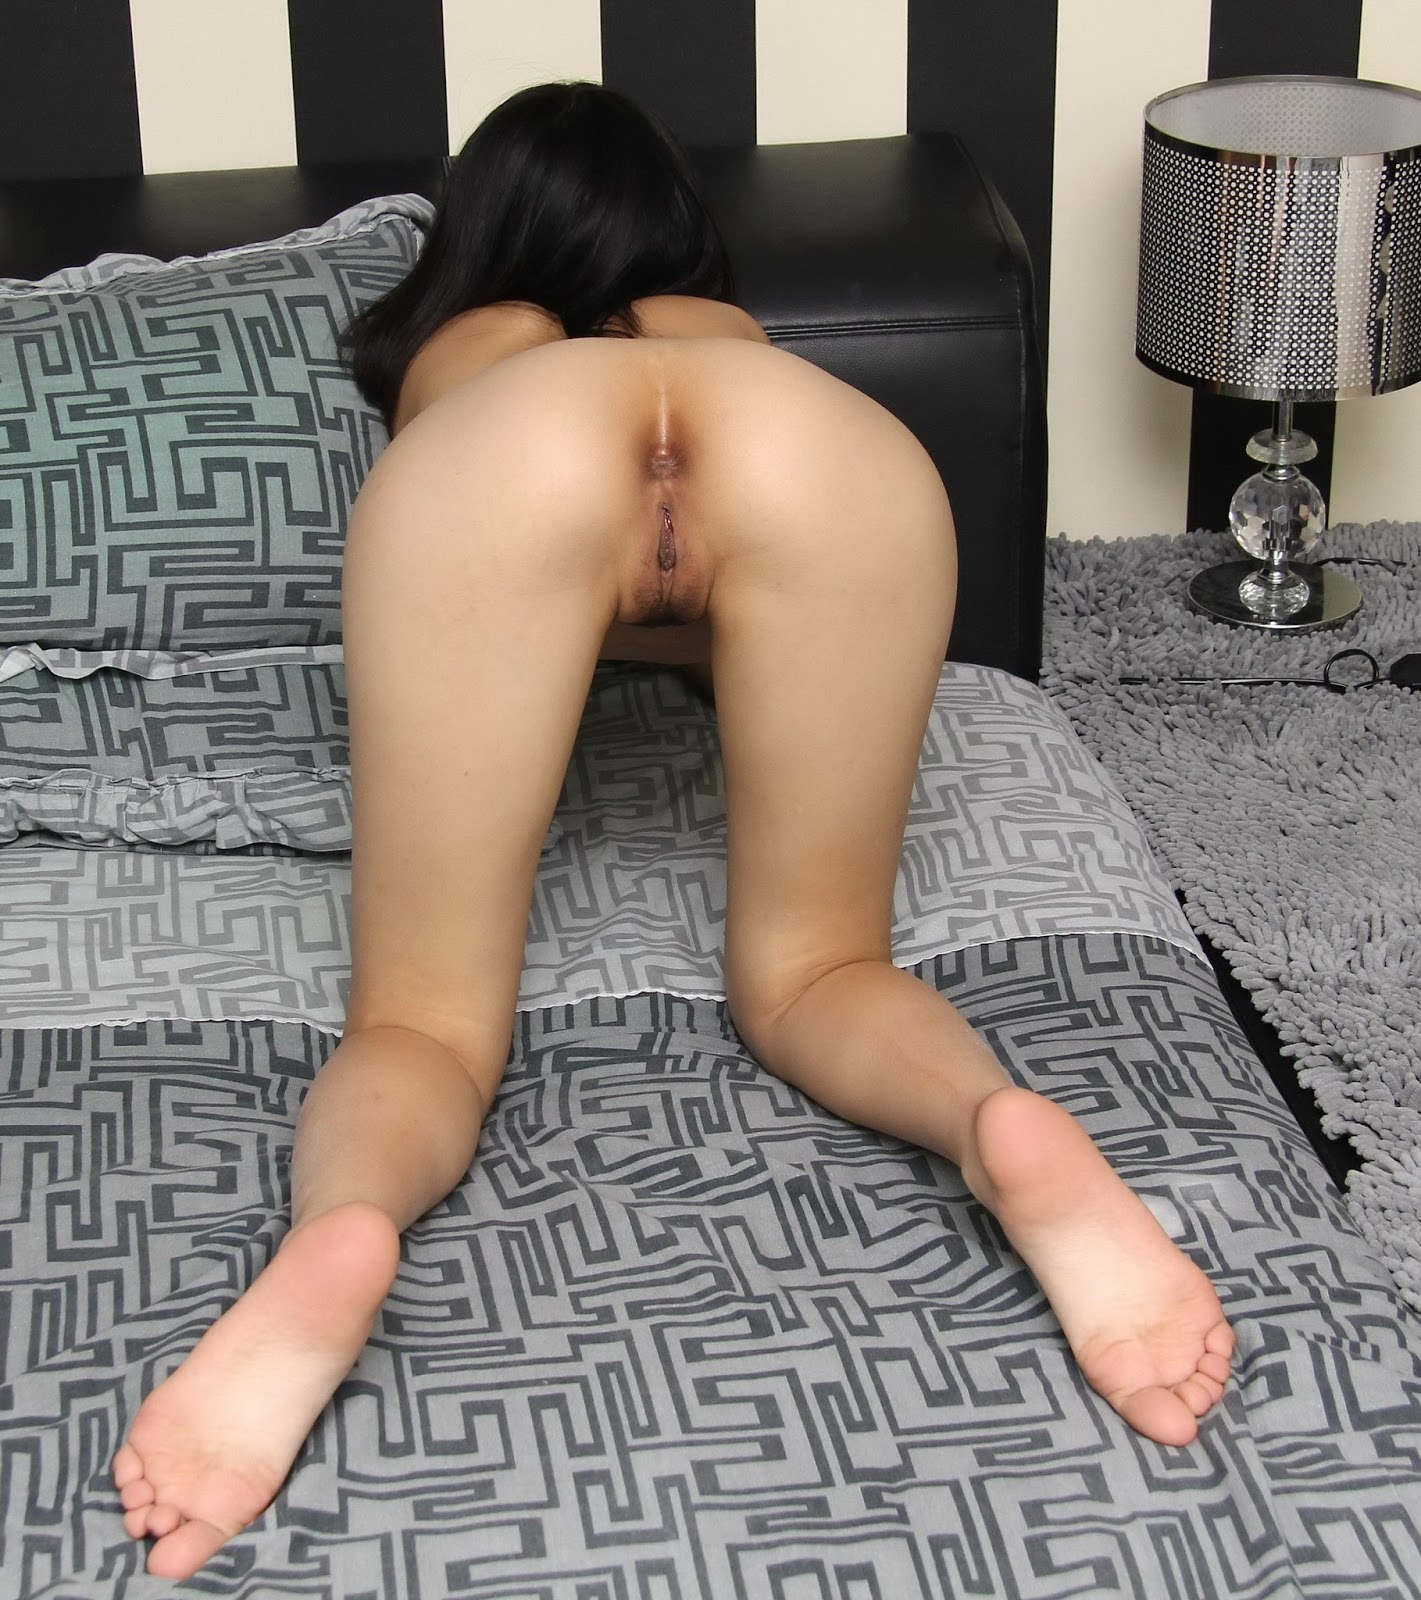 That bending toe backwards fetish 6323 for the